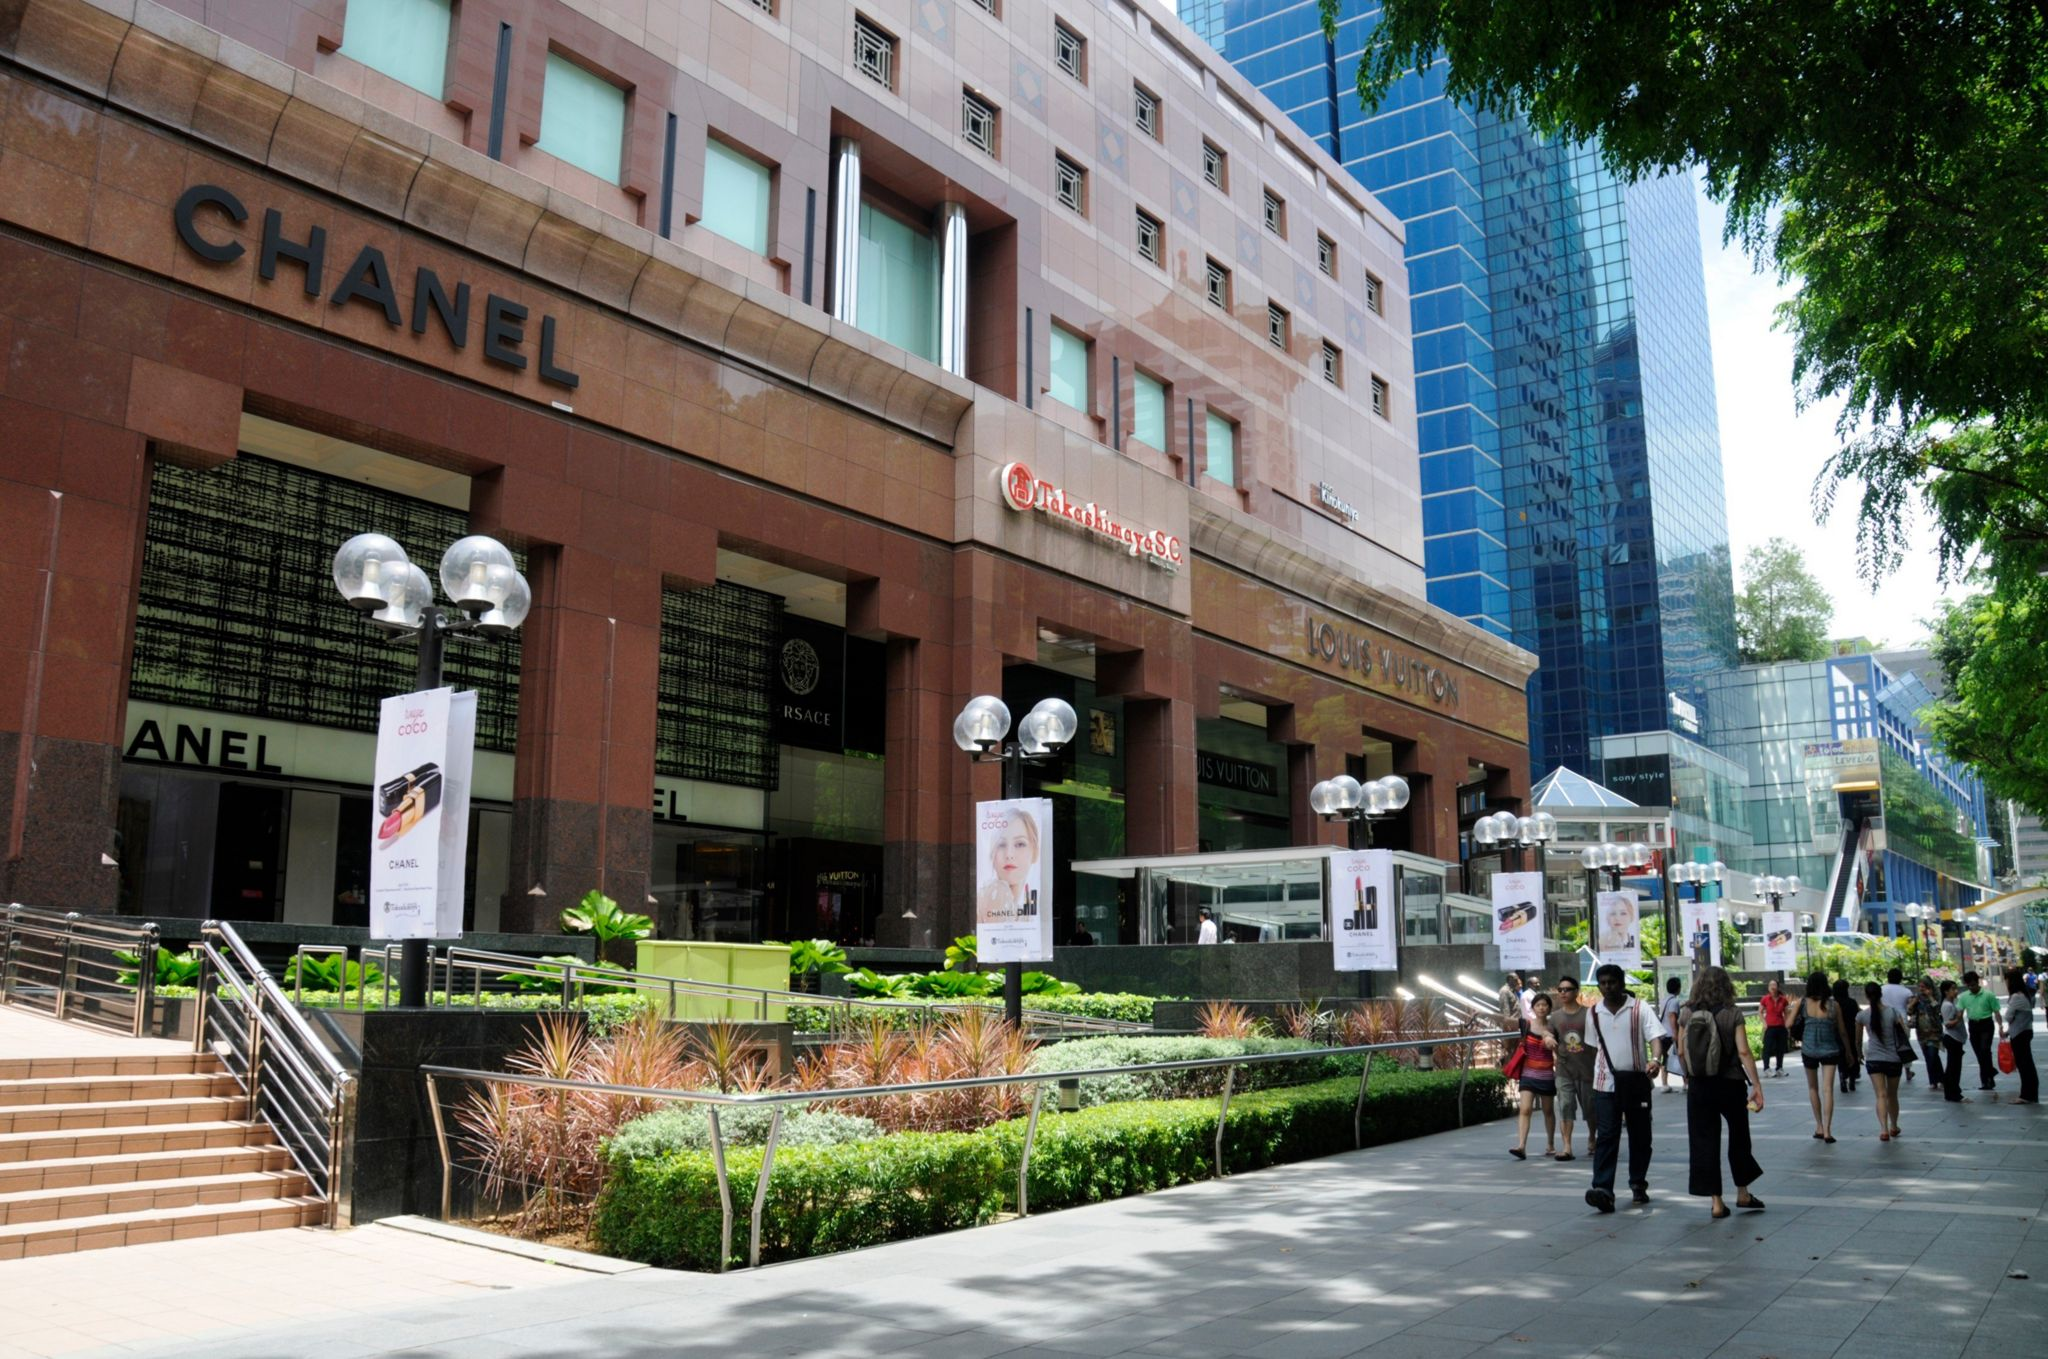 Stores in Orchard Road shopping street in Singapore. Orchard Road is a road in Singapore that is the retail and entertainment hub of the city-state